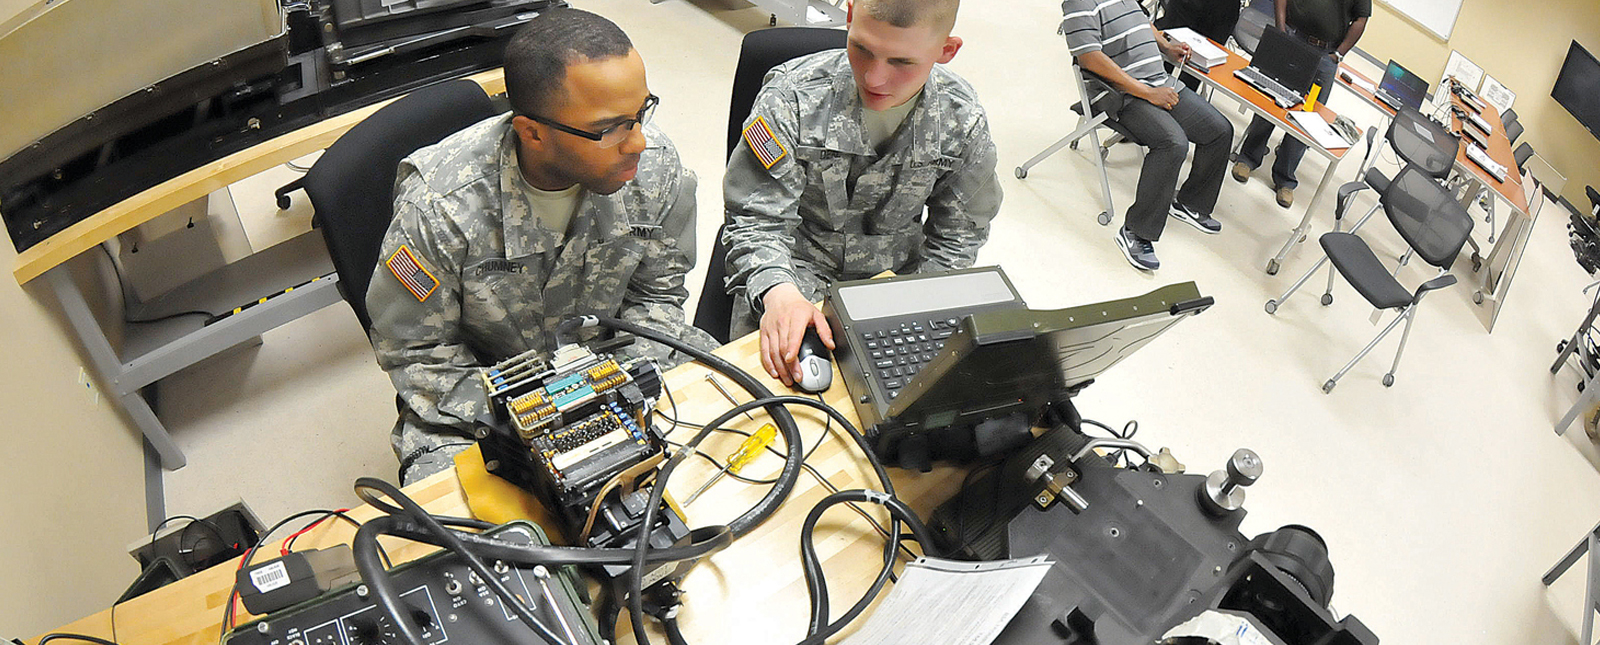 Two military personnel in a classroom / electronic lab setup.